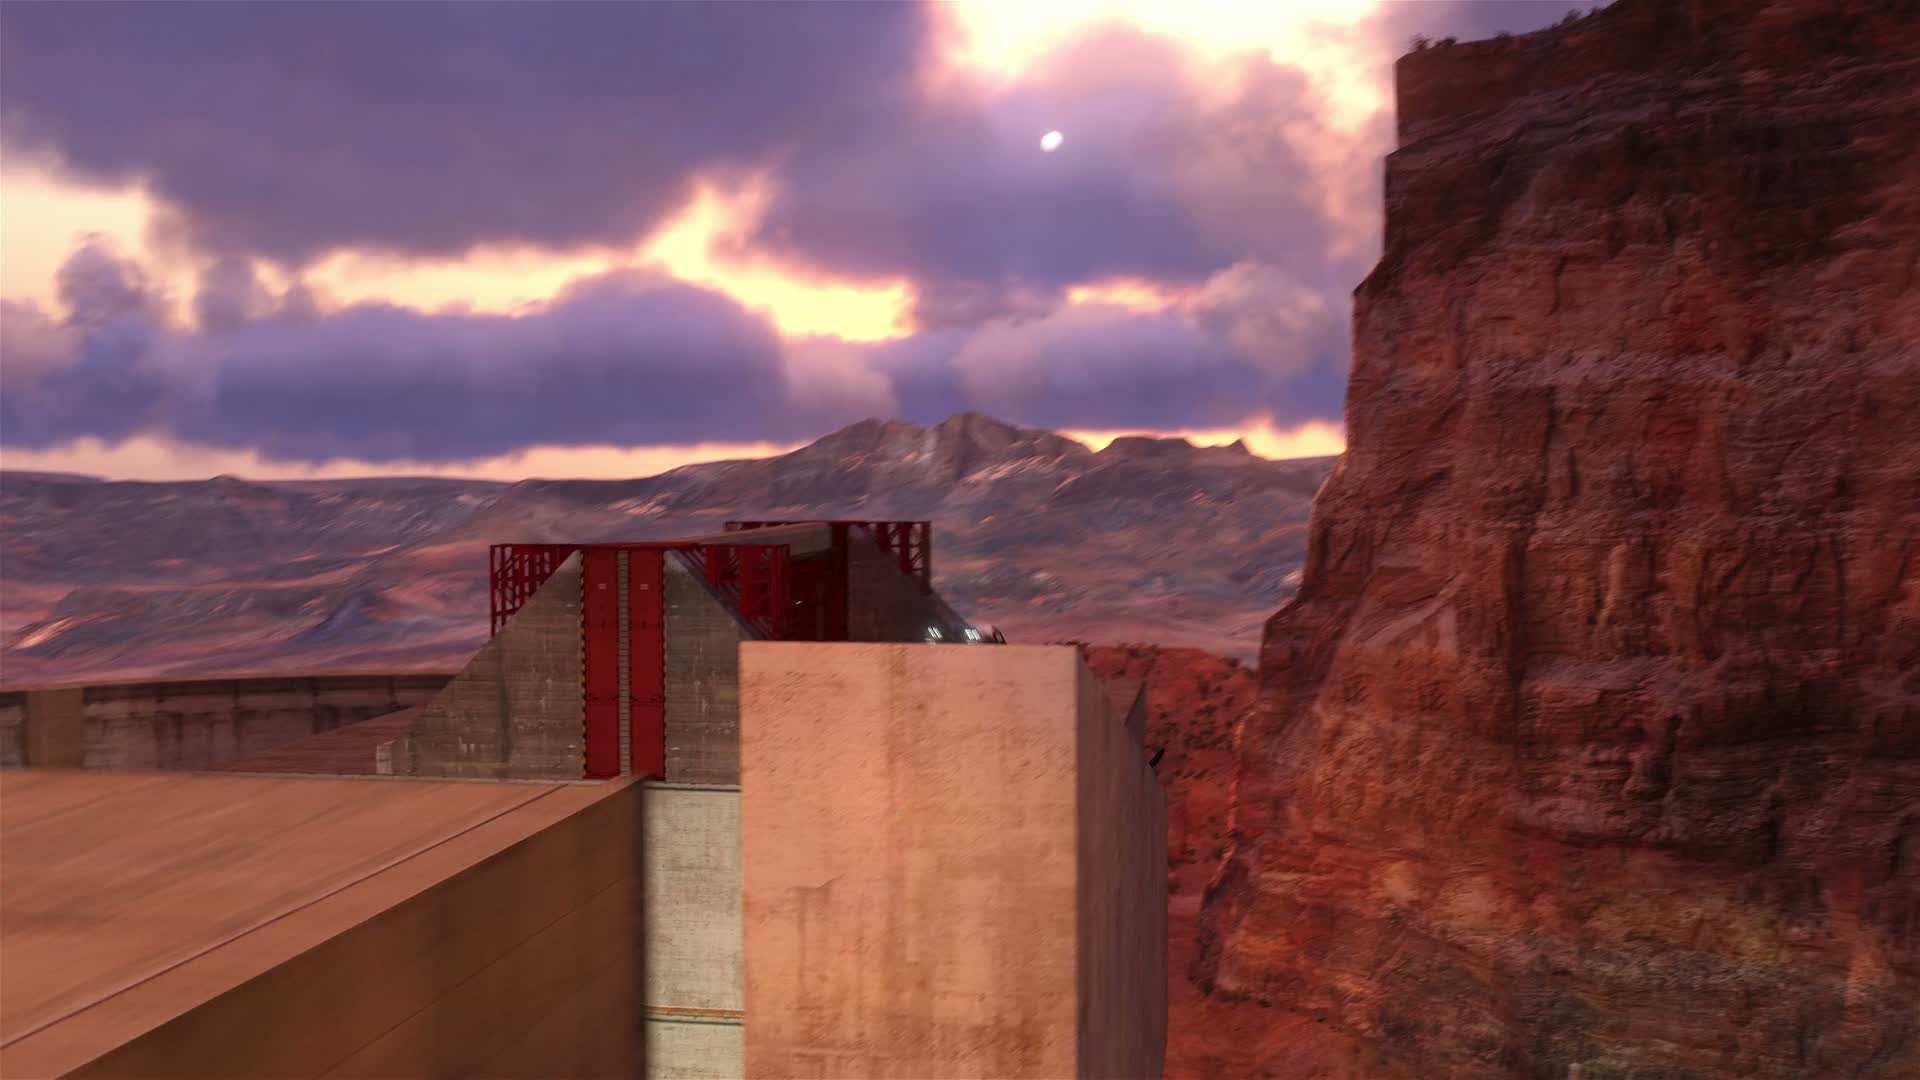 TrackMania 2: Canyon  Videos and Trailers